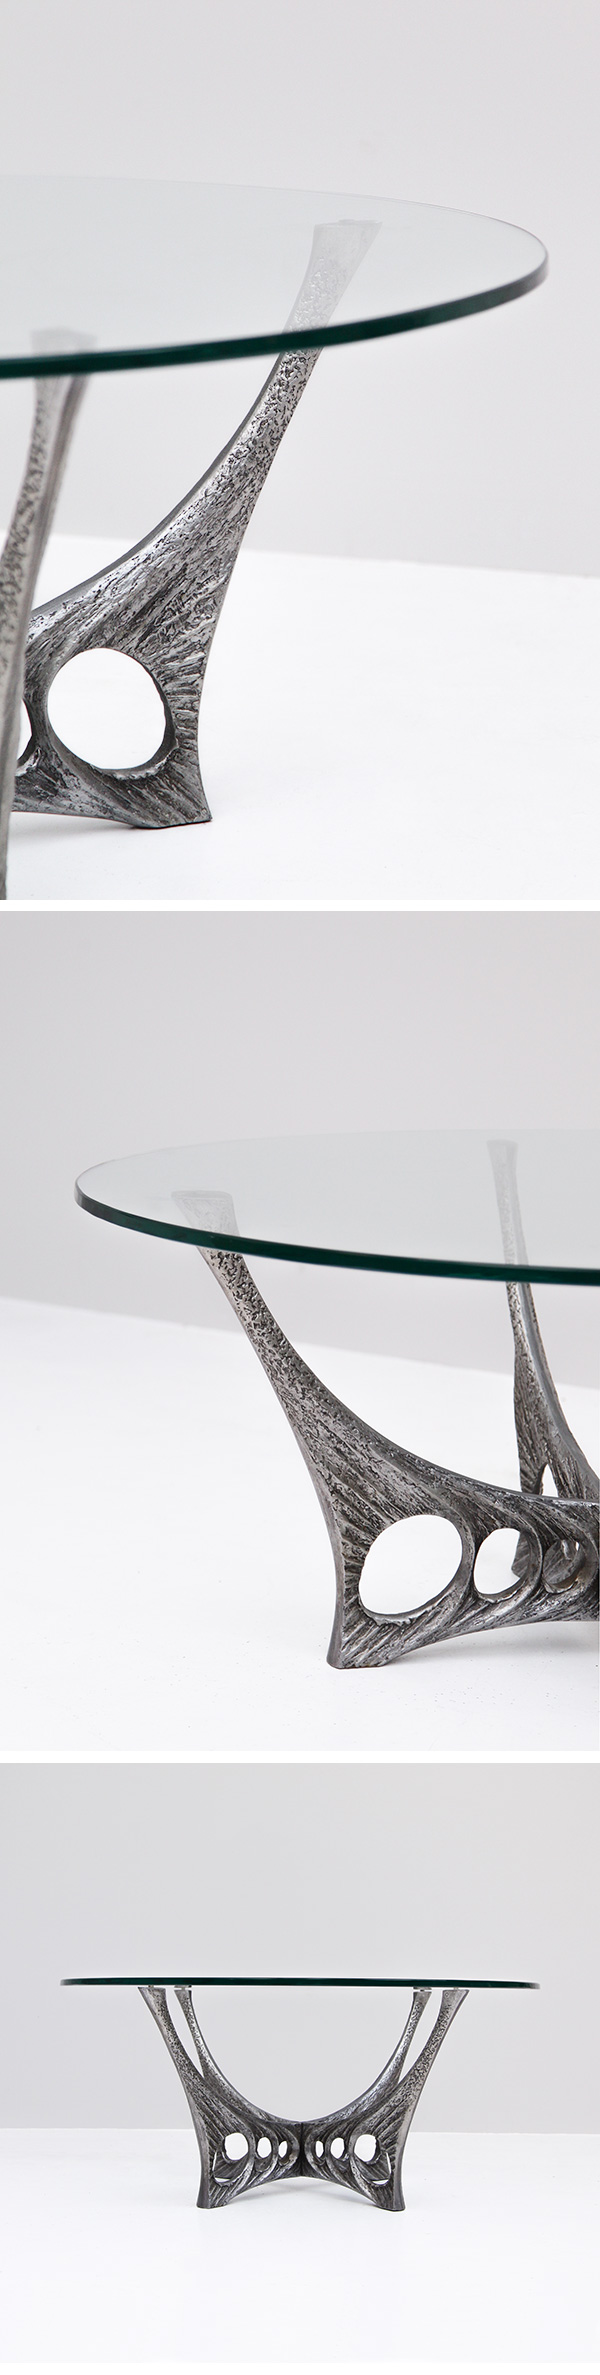 willy ceysens, exceptional, coffee table